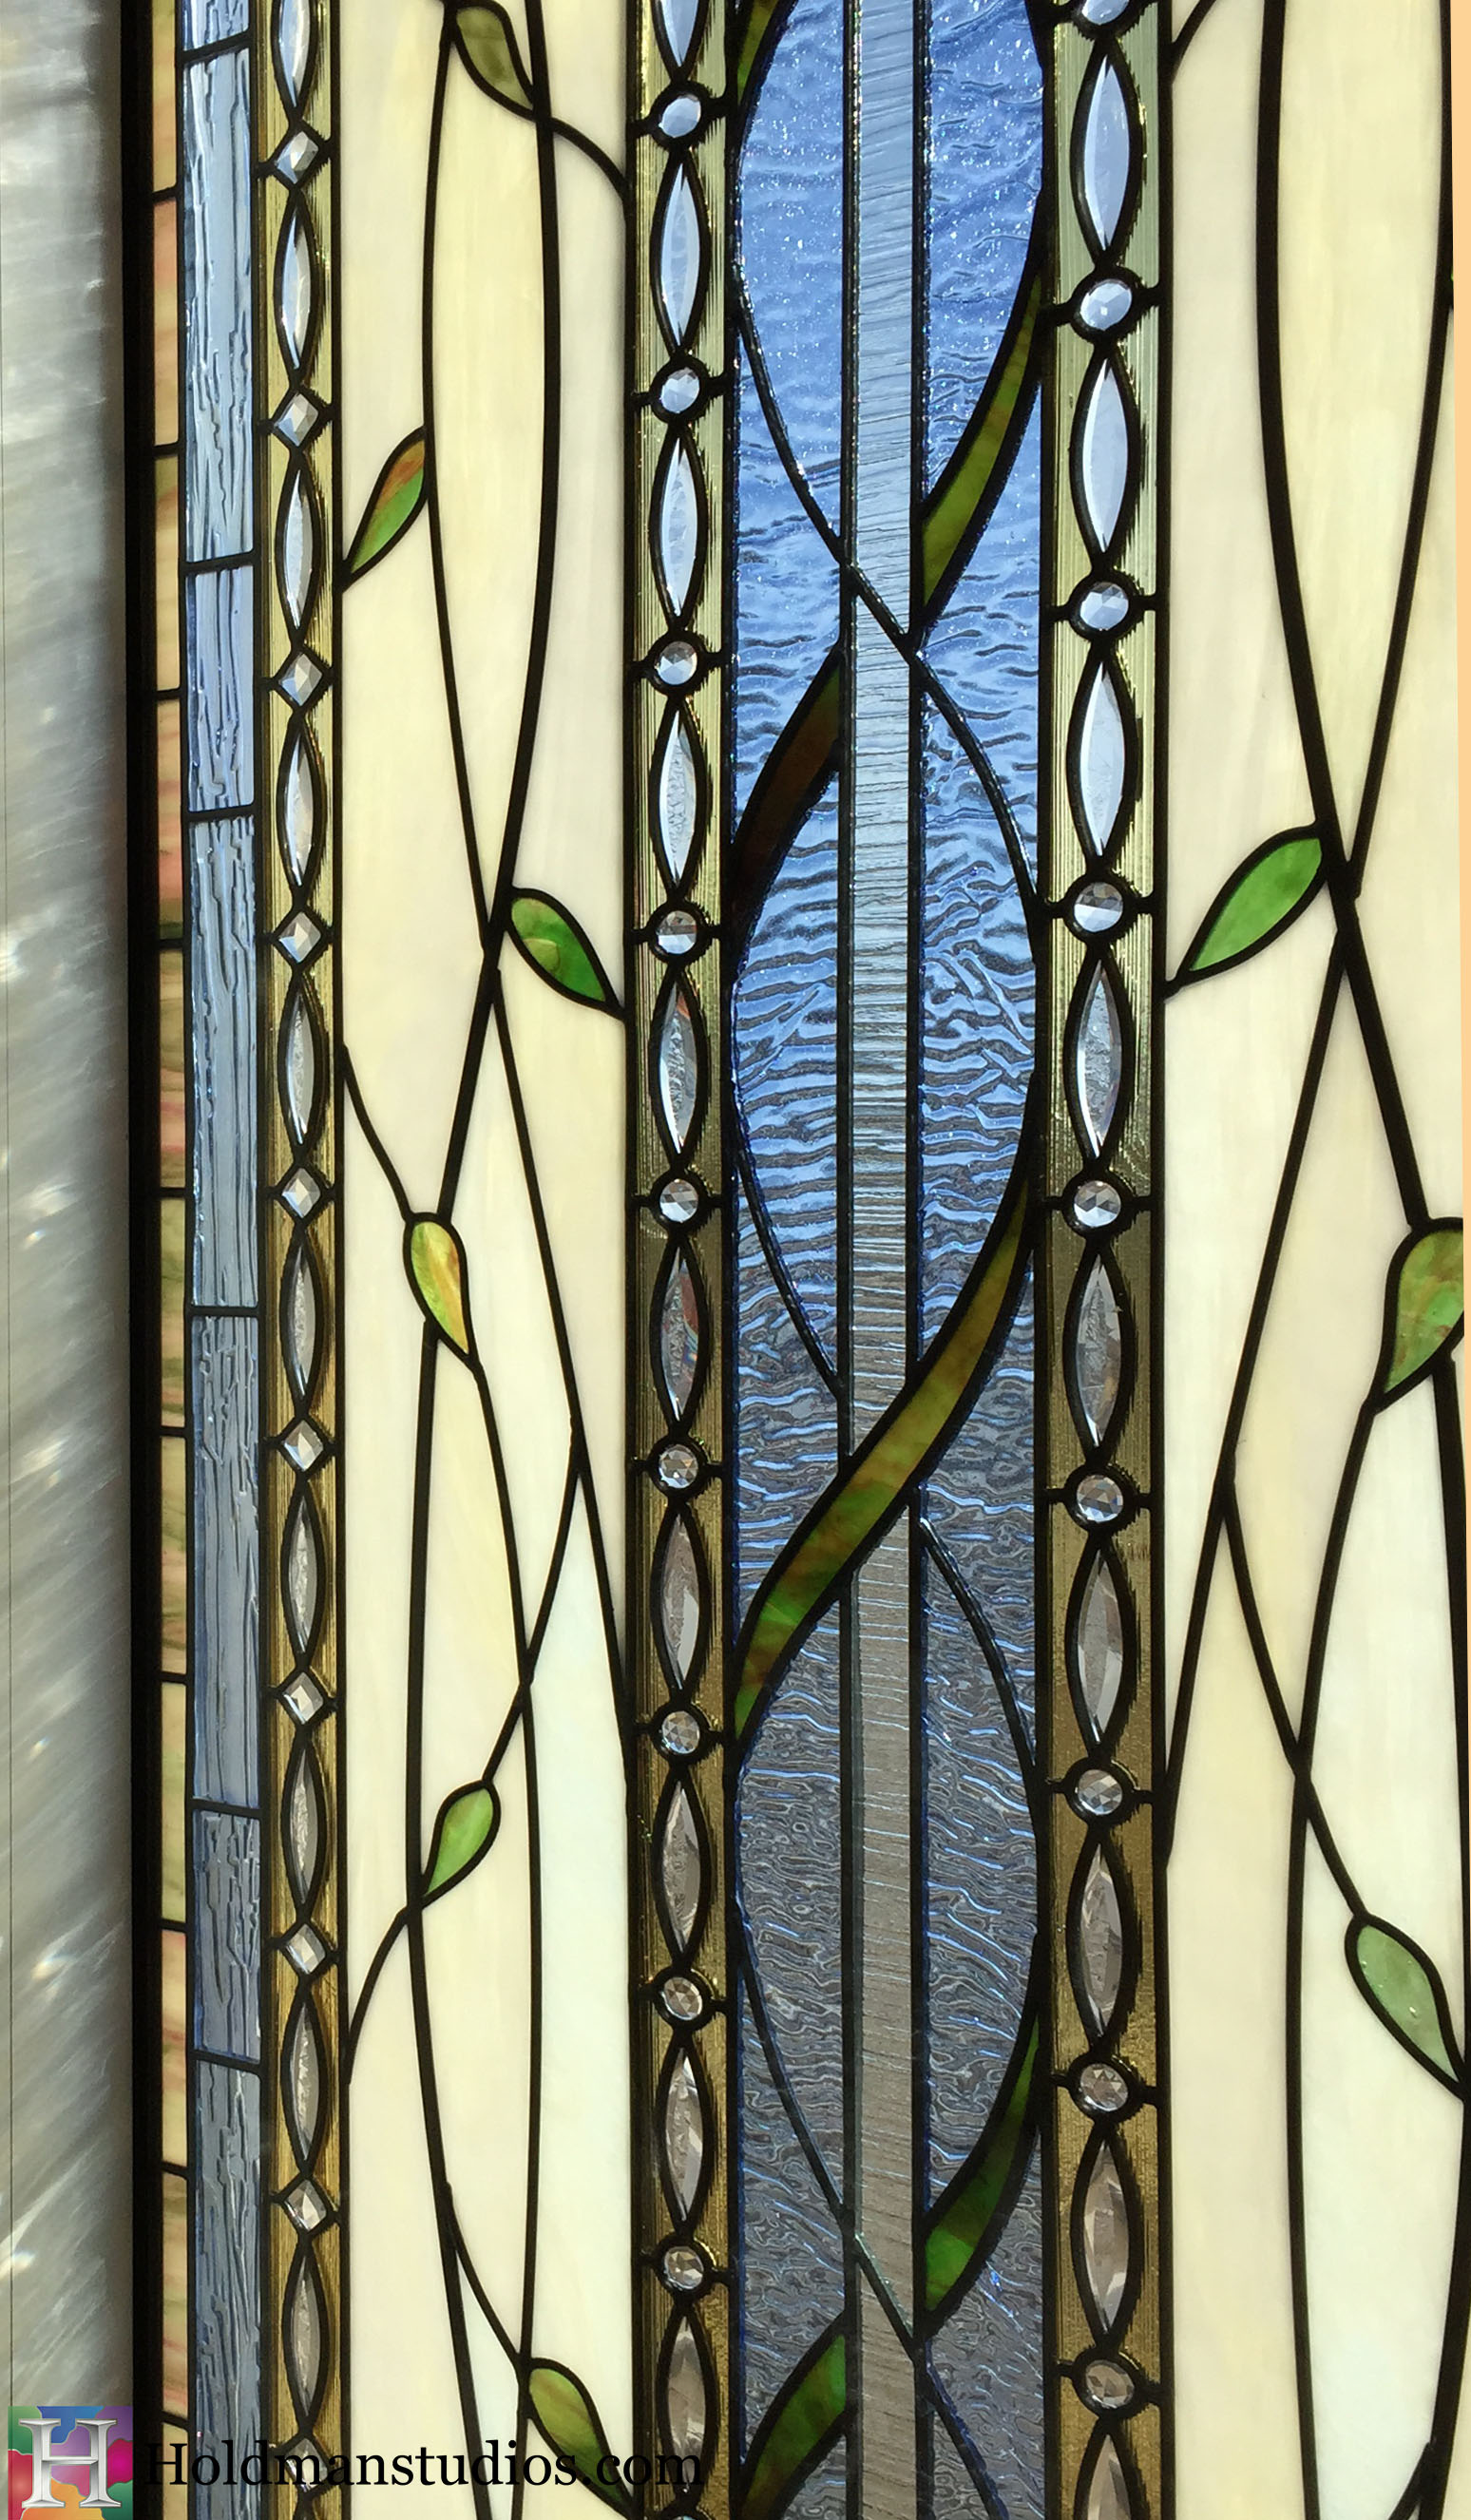 Holdman_Studios_Stained_Art_Glass_Payson_Utah_Temple_Apple_Blossom_Leaves_DNA_Spiral_Window_Closeup.jpg